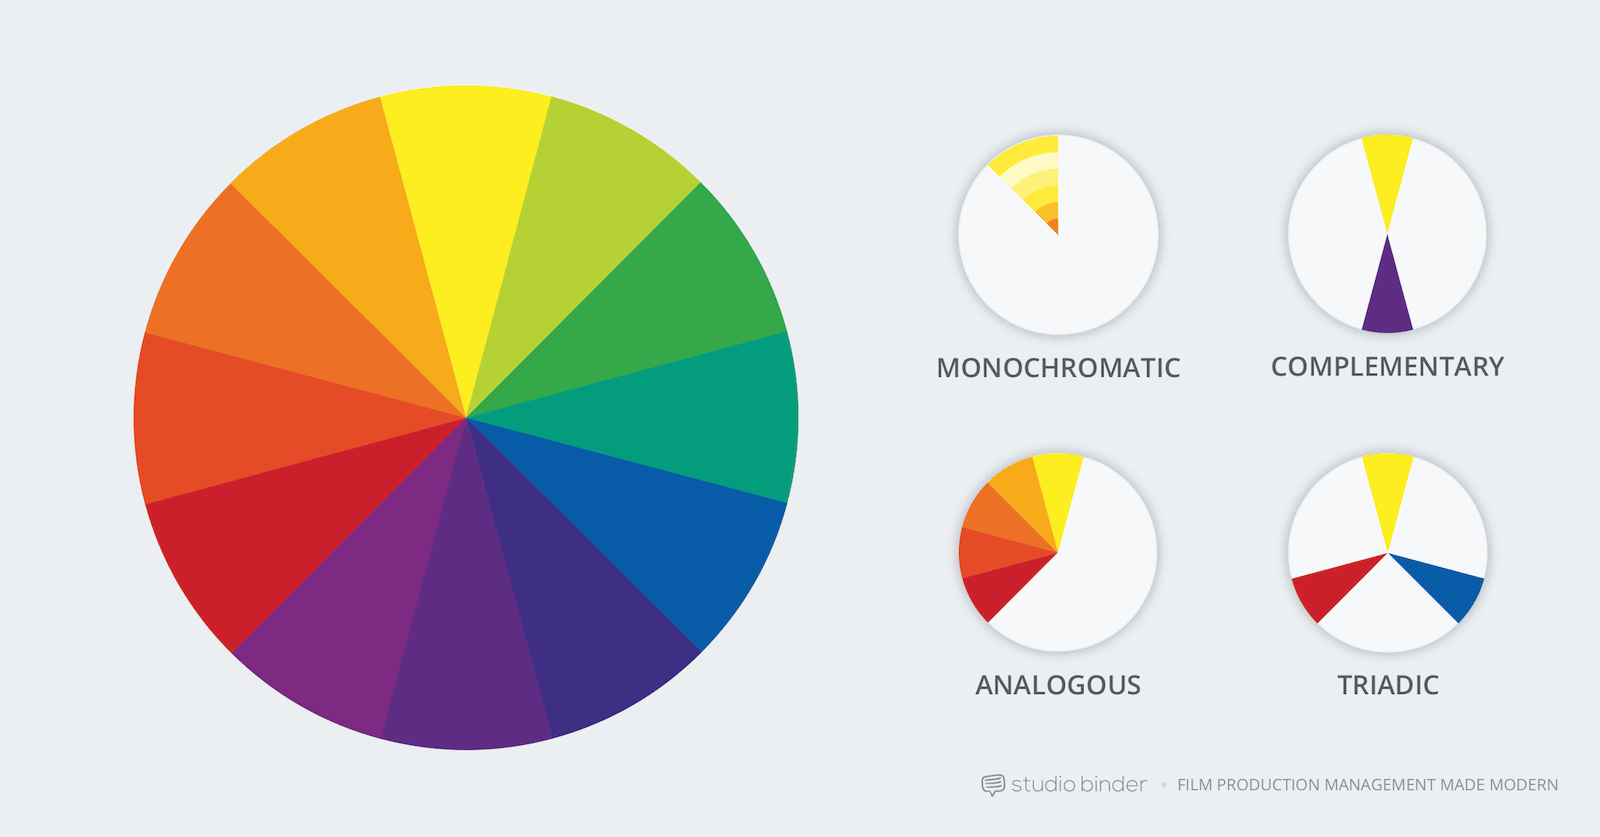 analagous color schemes